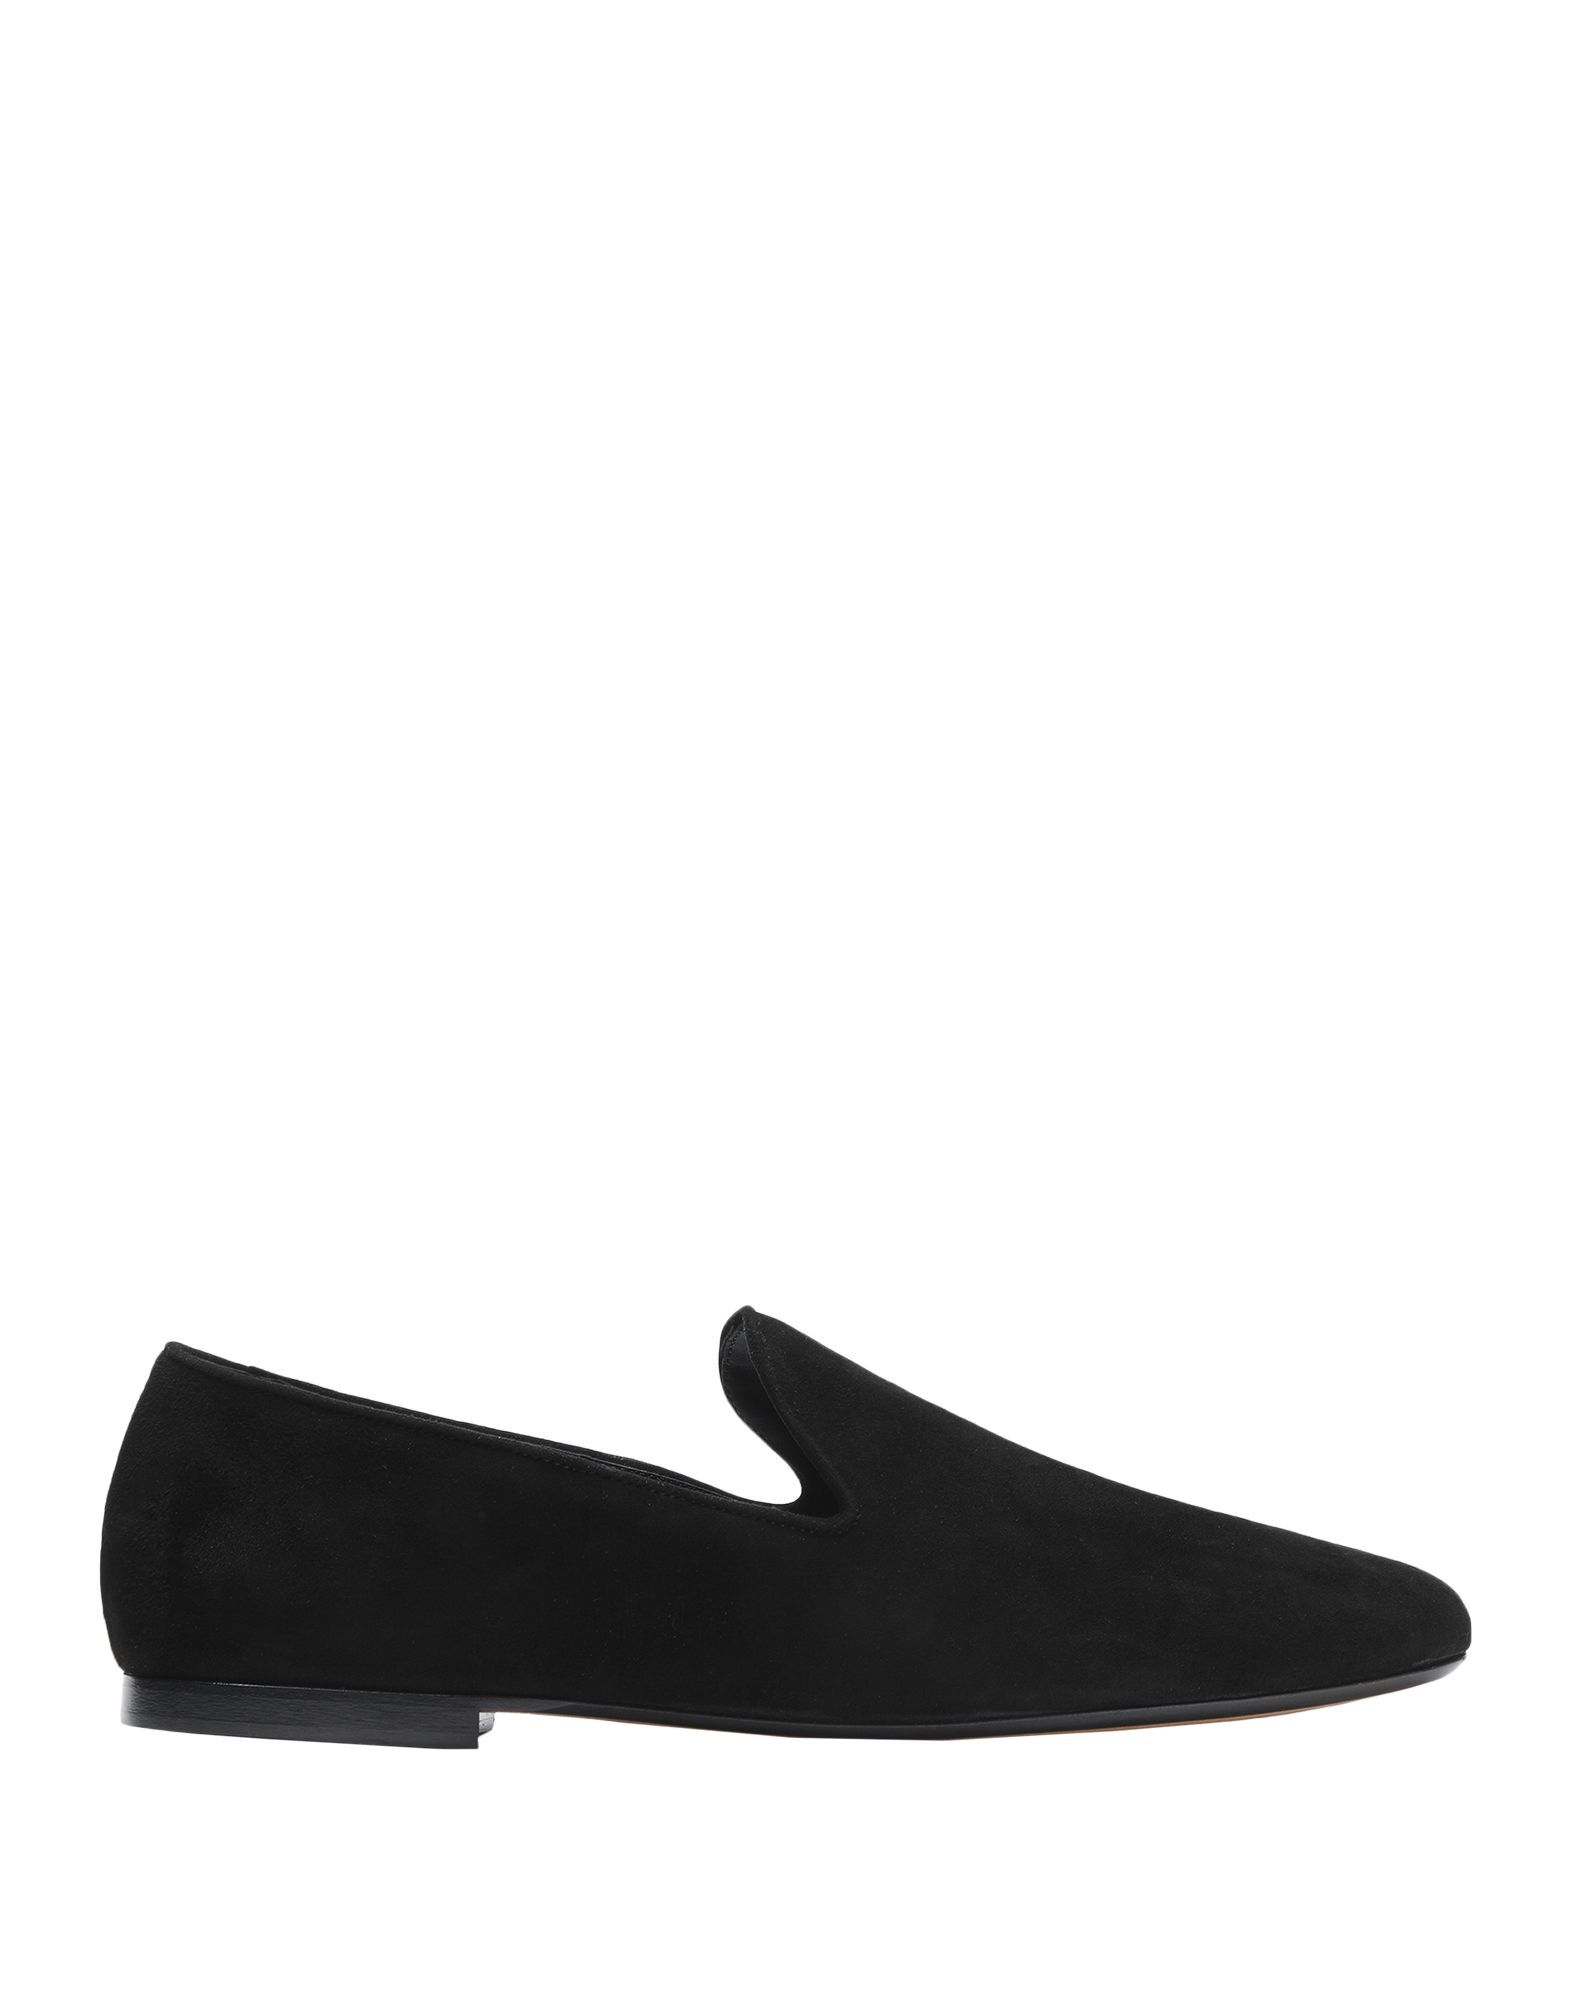 Vince. Black Leather Loafers